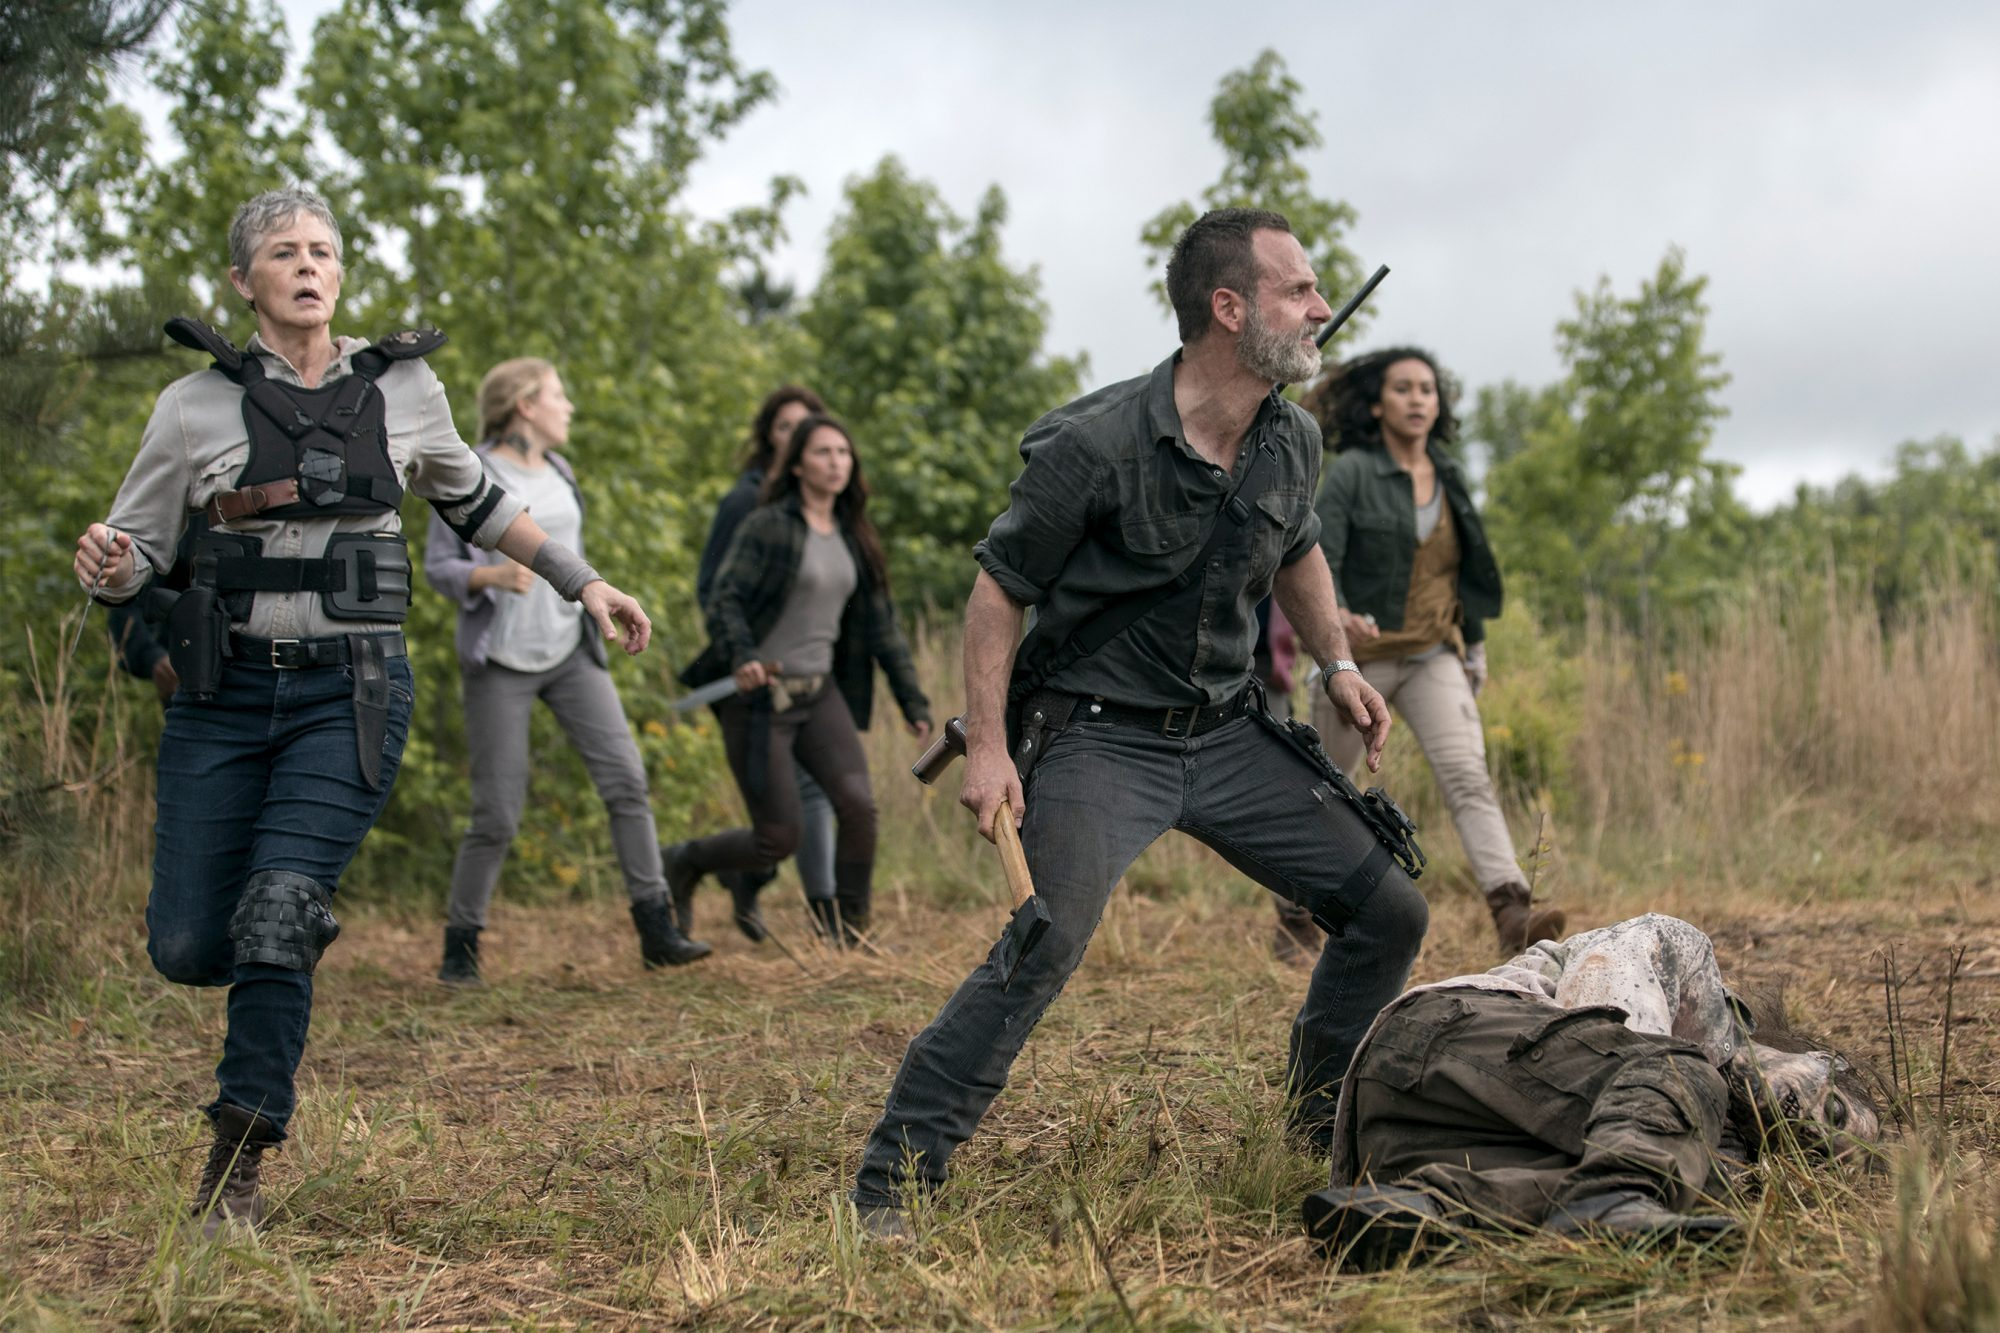 TWD_902_JLD_0515_0948_RT